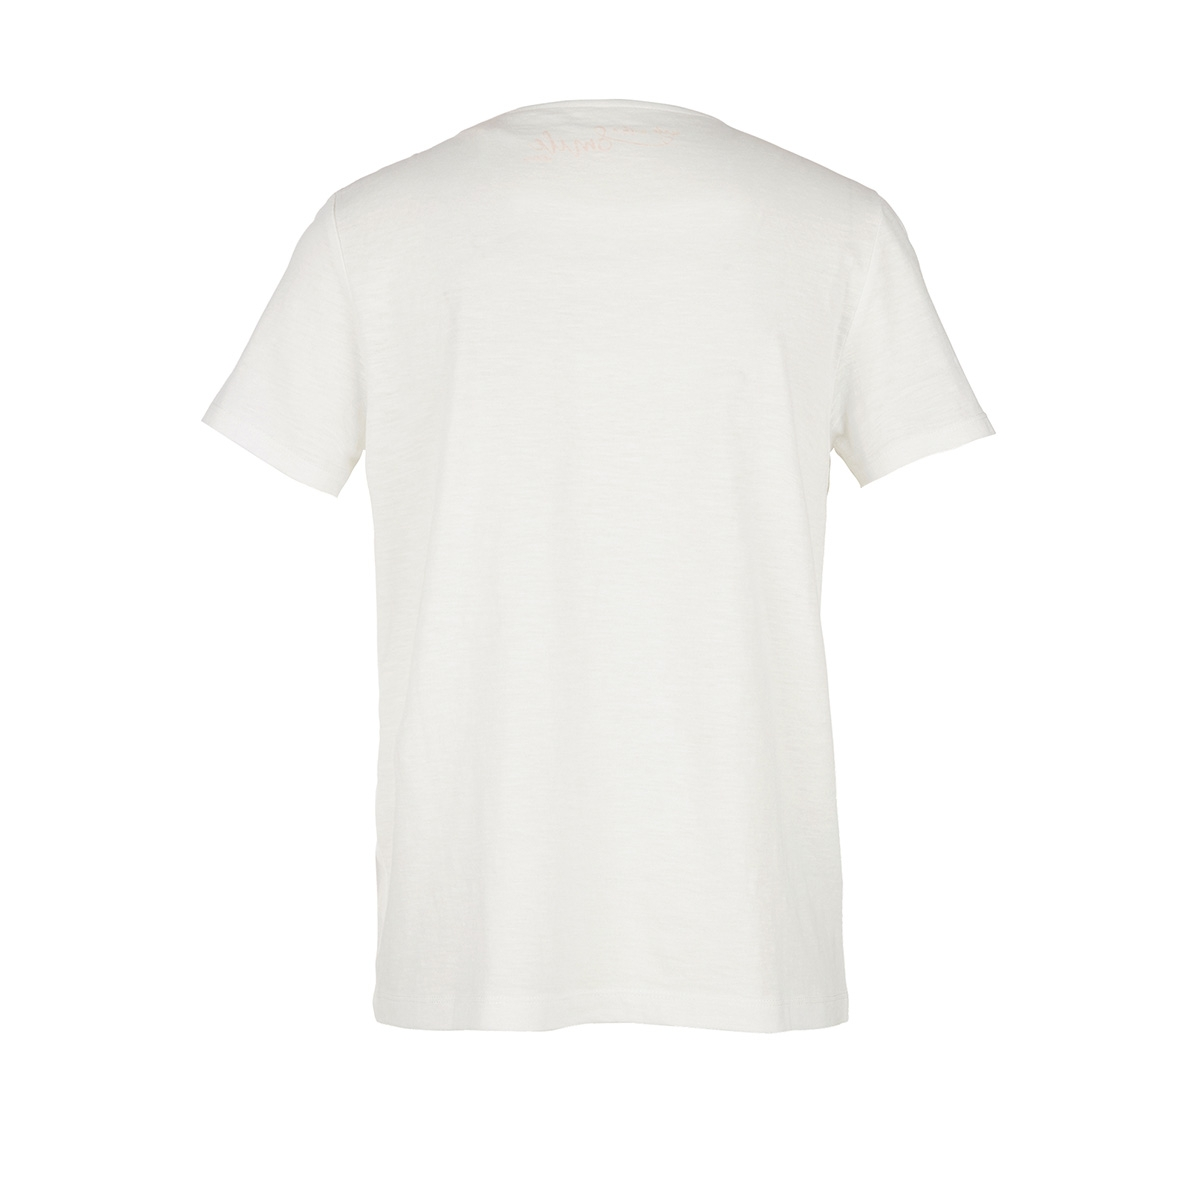 t shirt 14005325021 s.oliver t-shirt 0210